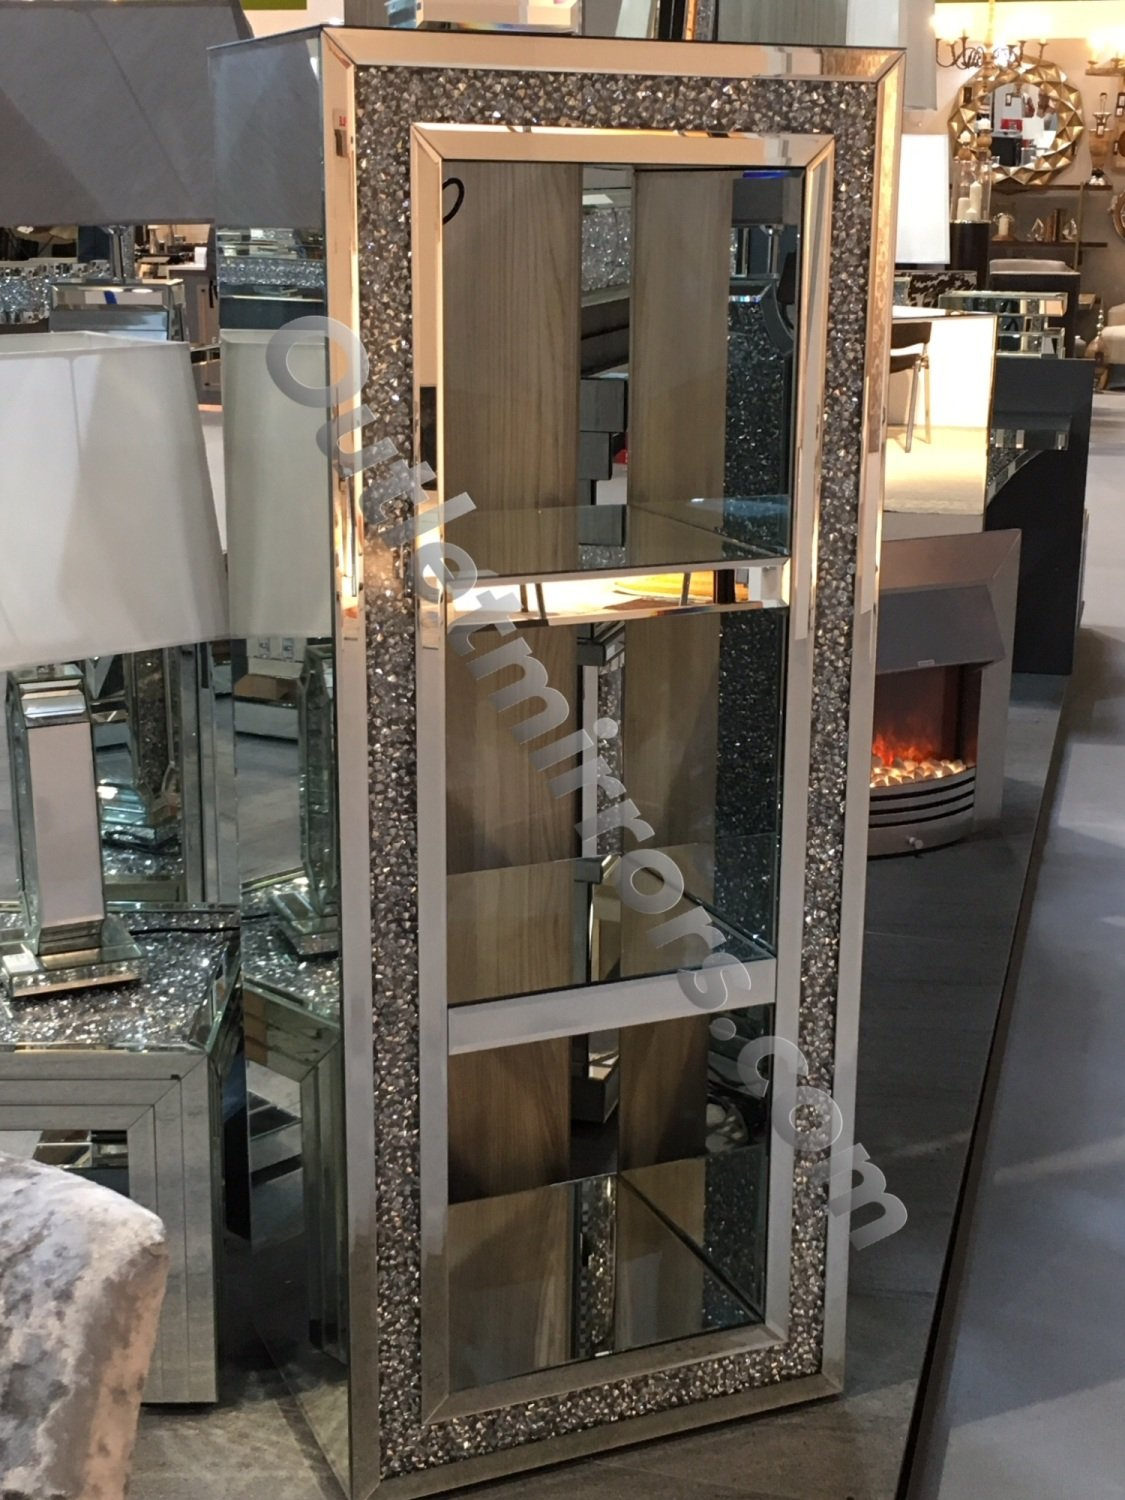 New Diamond Crush Sparkle Crystal Mirrored Block Display